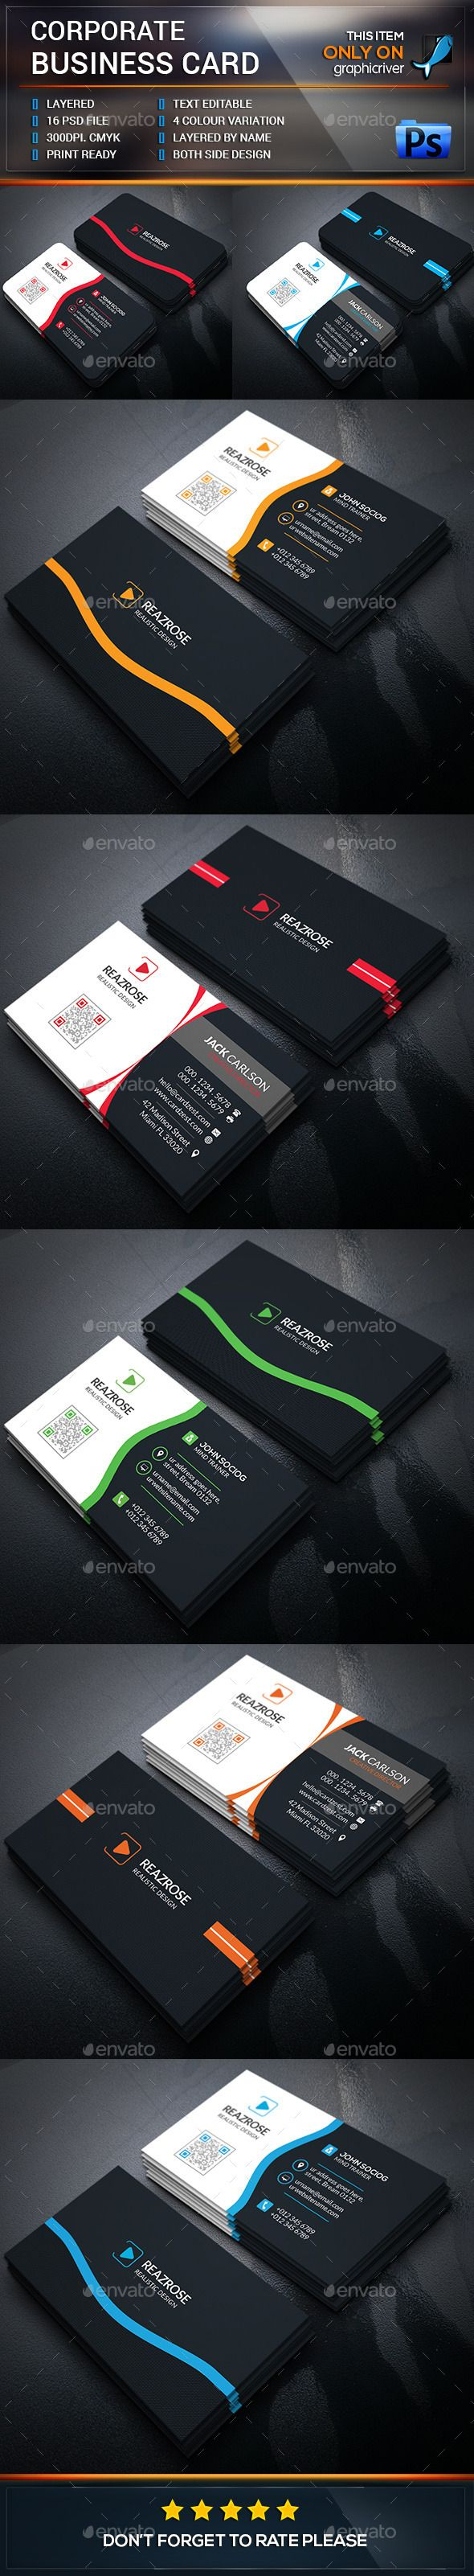 Business Card Bundle Template #design Buy Now: http://graphicriver ...